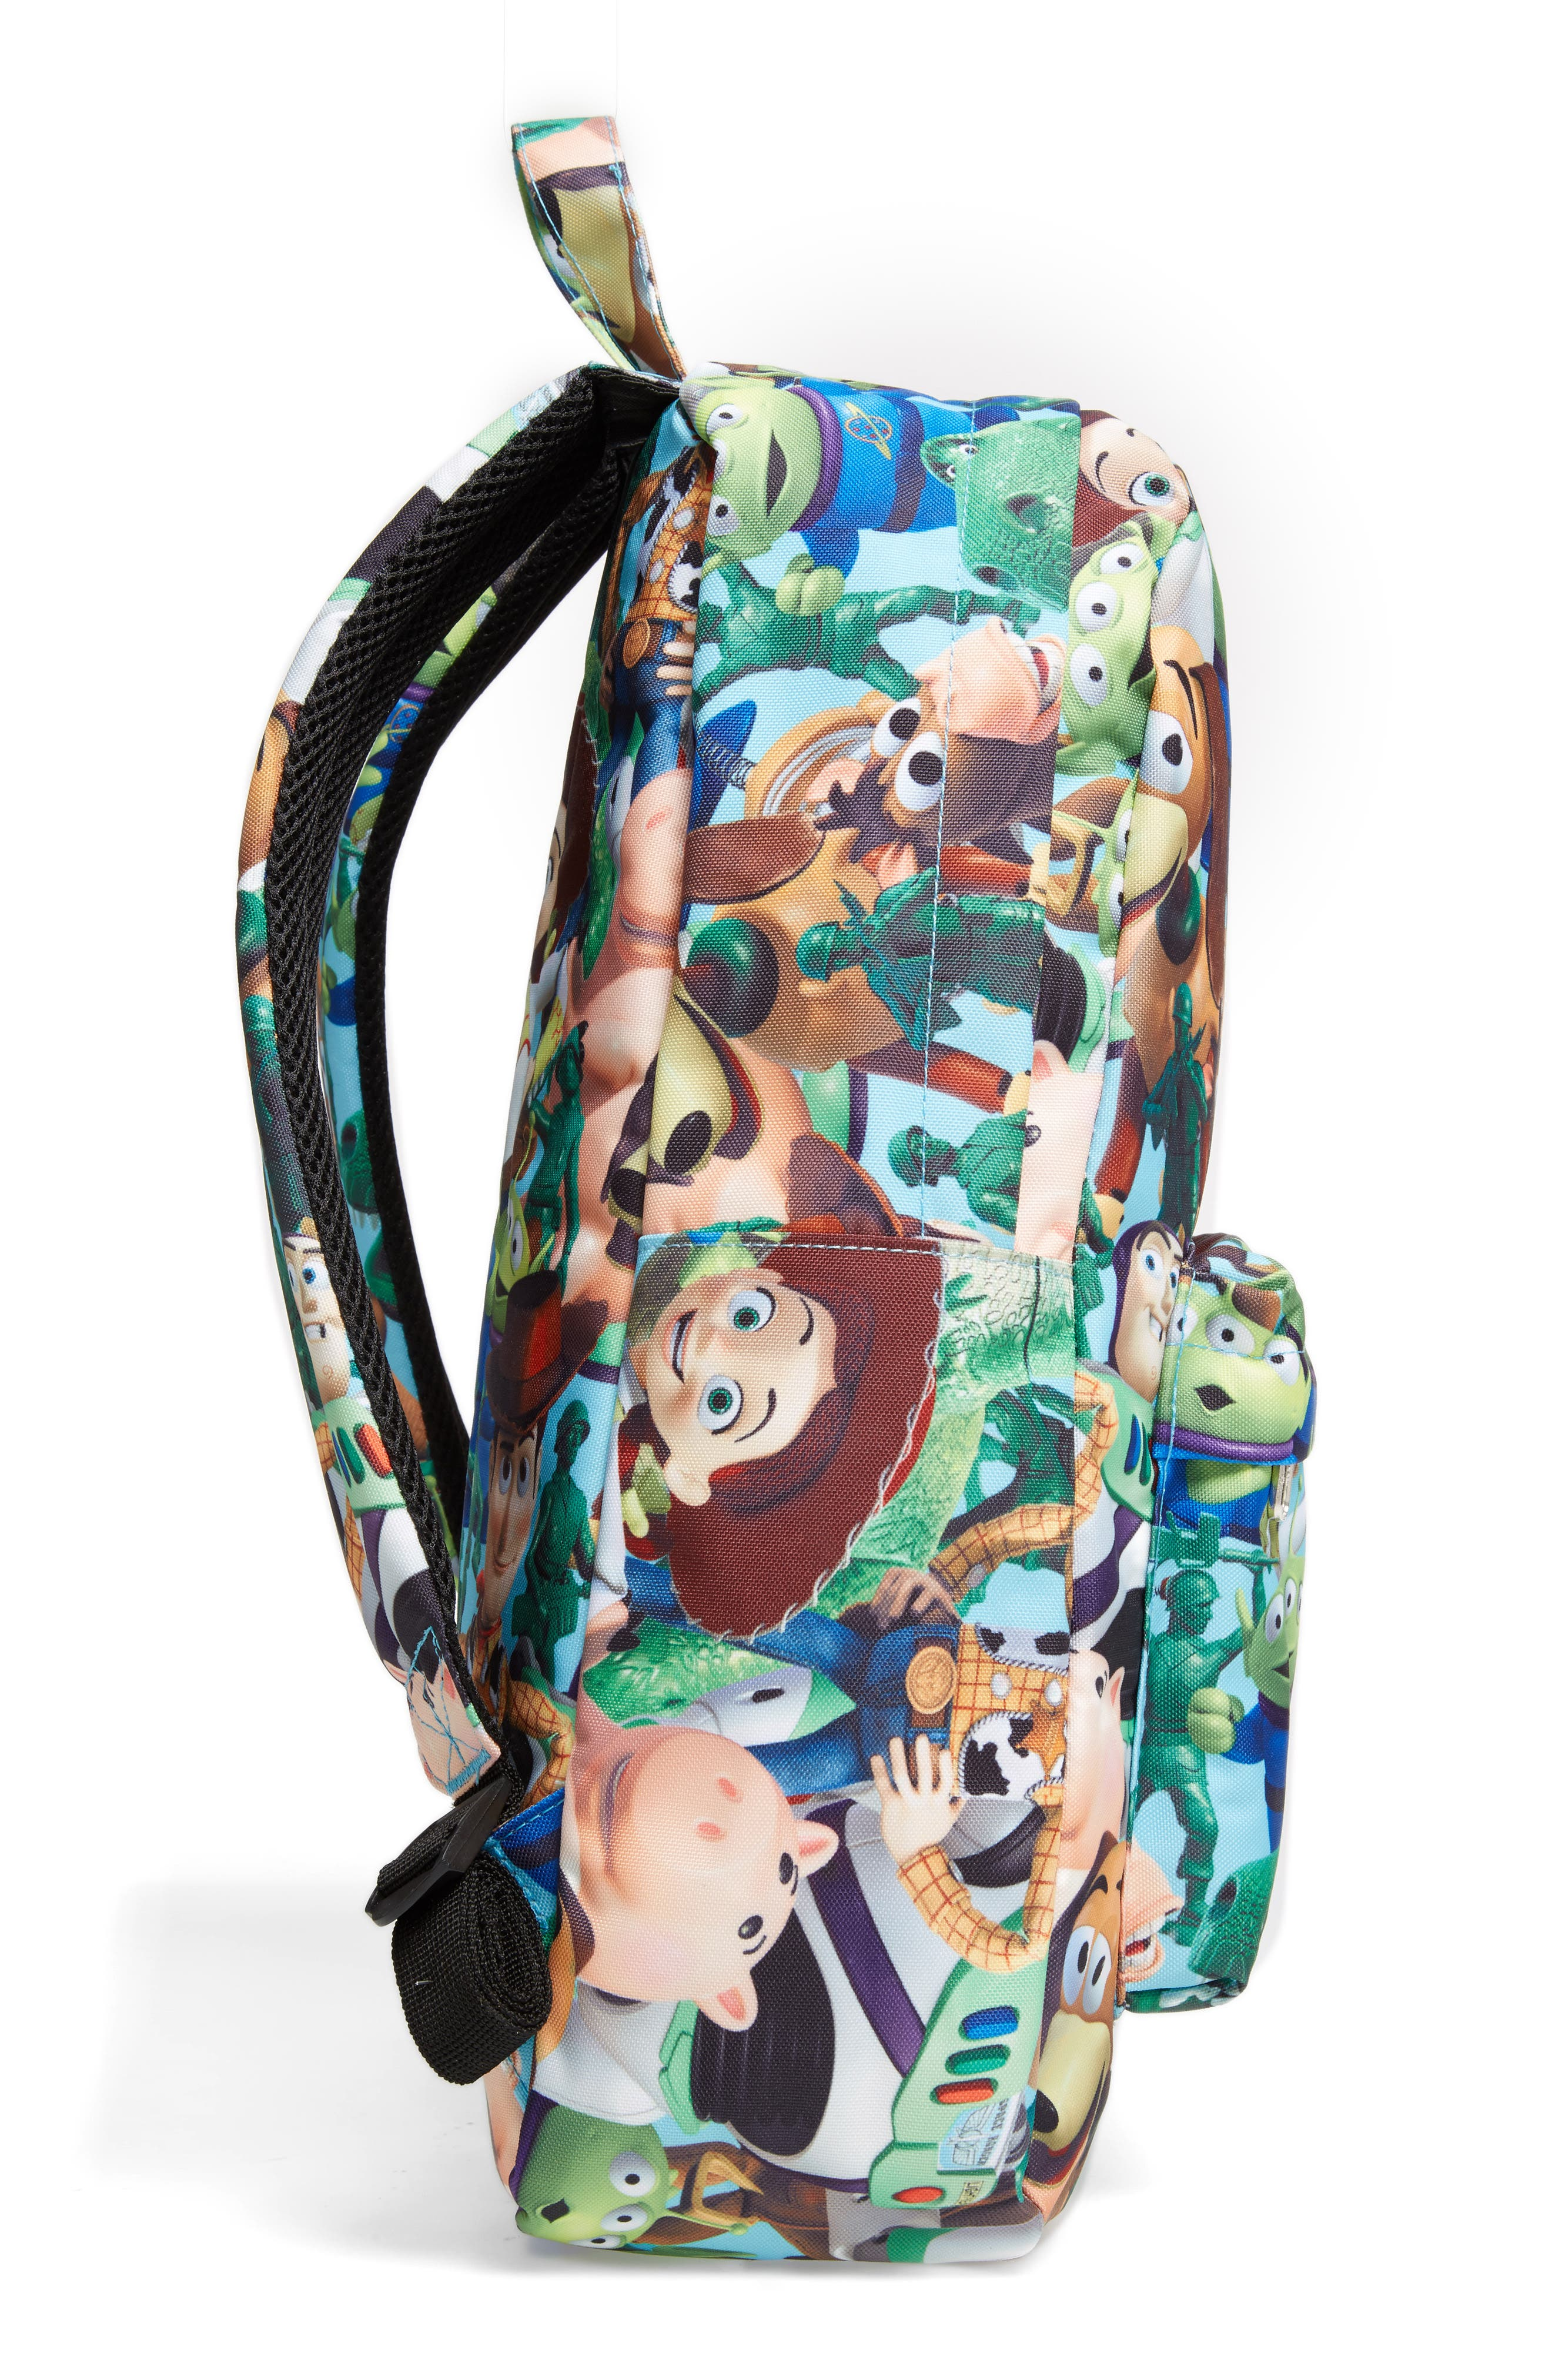 Disney<sup>®</sup> Toy Story Backpack,                             Alternate thumbnail 4, color,                             Blue Multi